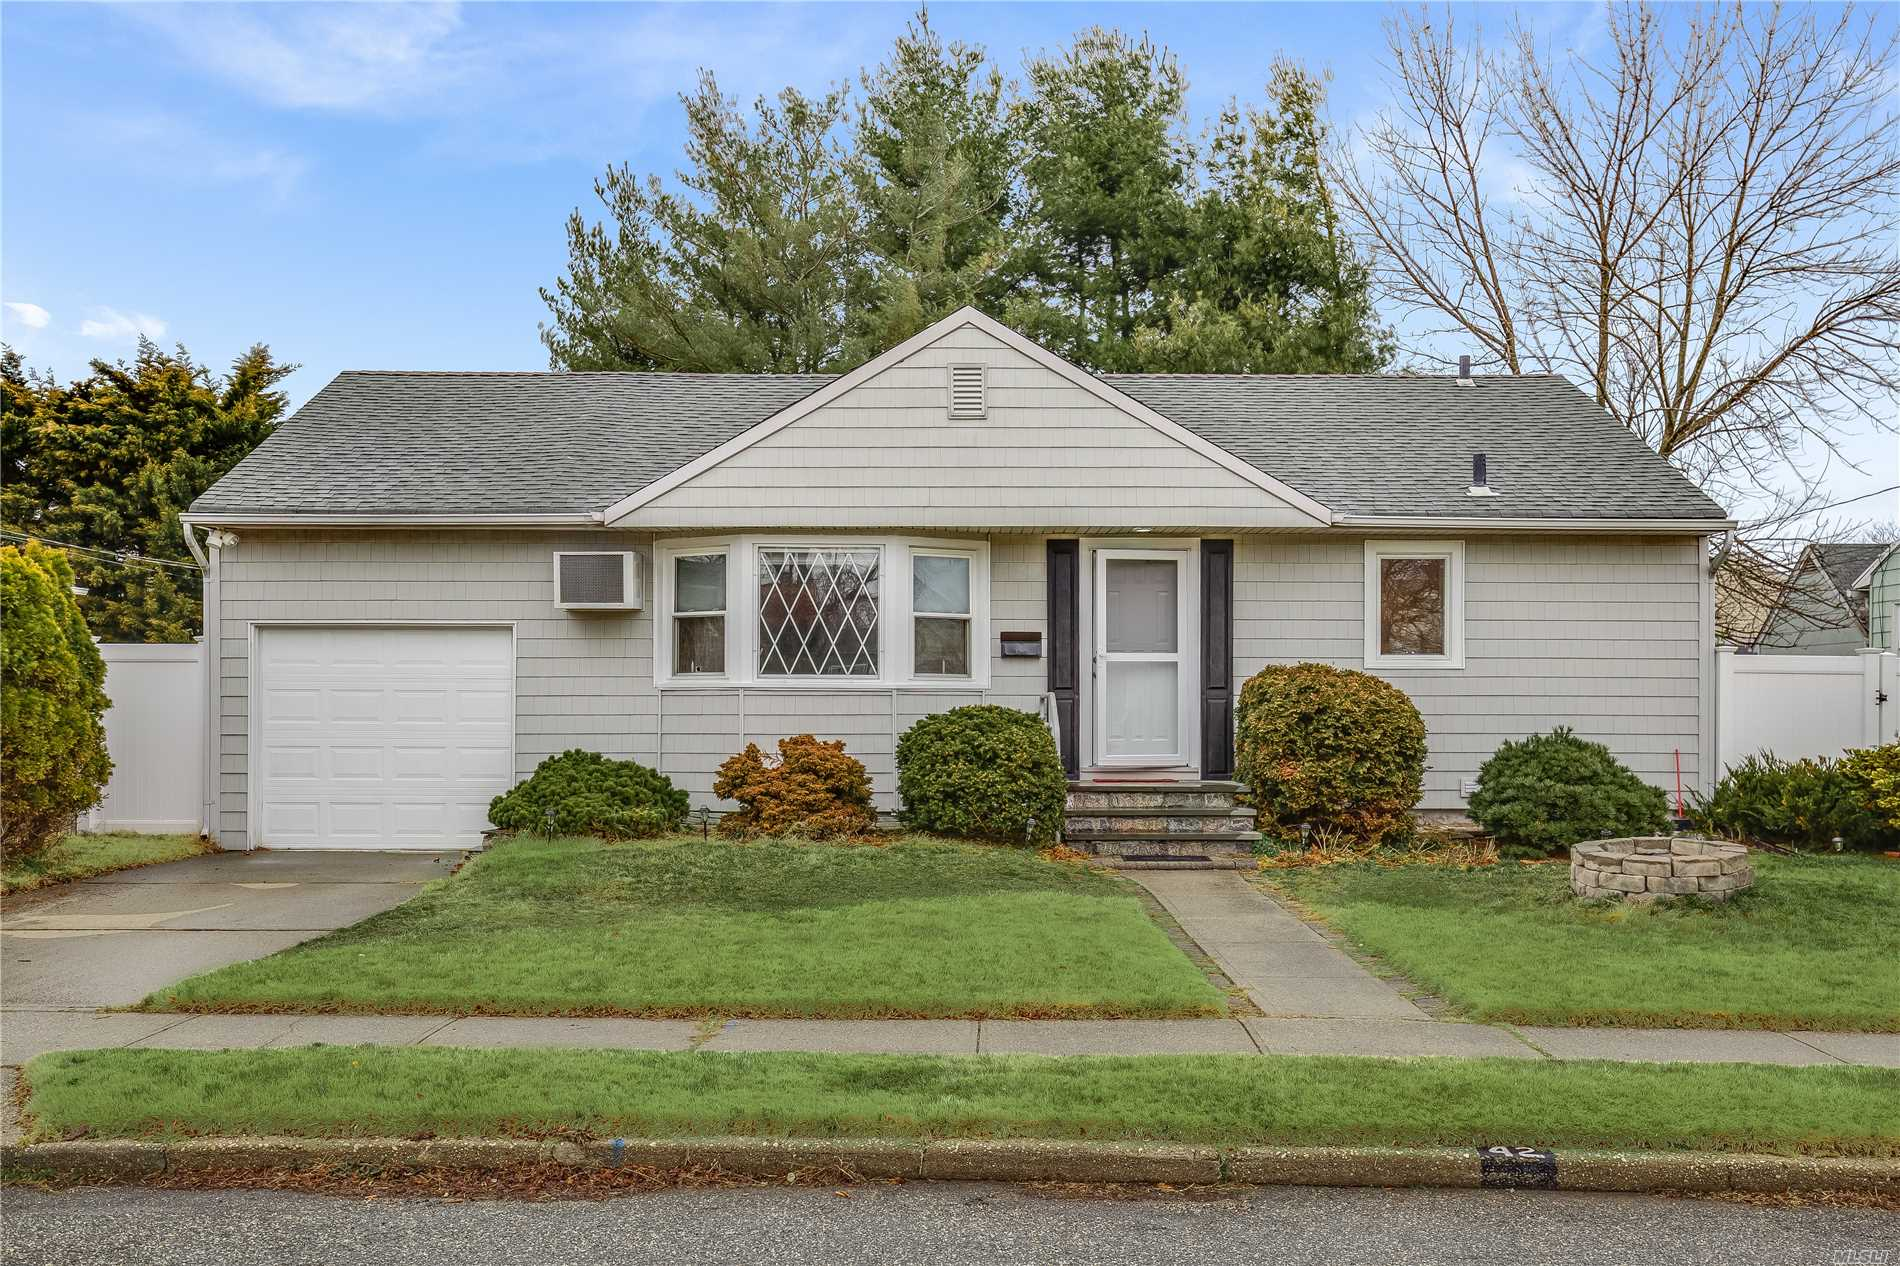 Well maintained sunshine filled spacious Ranch, full finished bsmt/OSE, Lg Lr, Large Eik - Gas cooking, Updates-Refinished hardwood floors thruout, Newer Roof, siding, Dryer, mostly Andersen Windows, elec 150 amp, PVC fence, new Sewer connection, attached Garage,  Close proximity To Train stations, Mall, Shopping, Major Hwys, Not in flood zone, Charles Champagne Bethpage schools